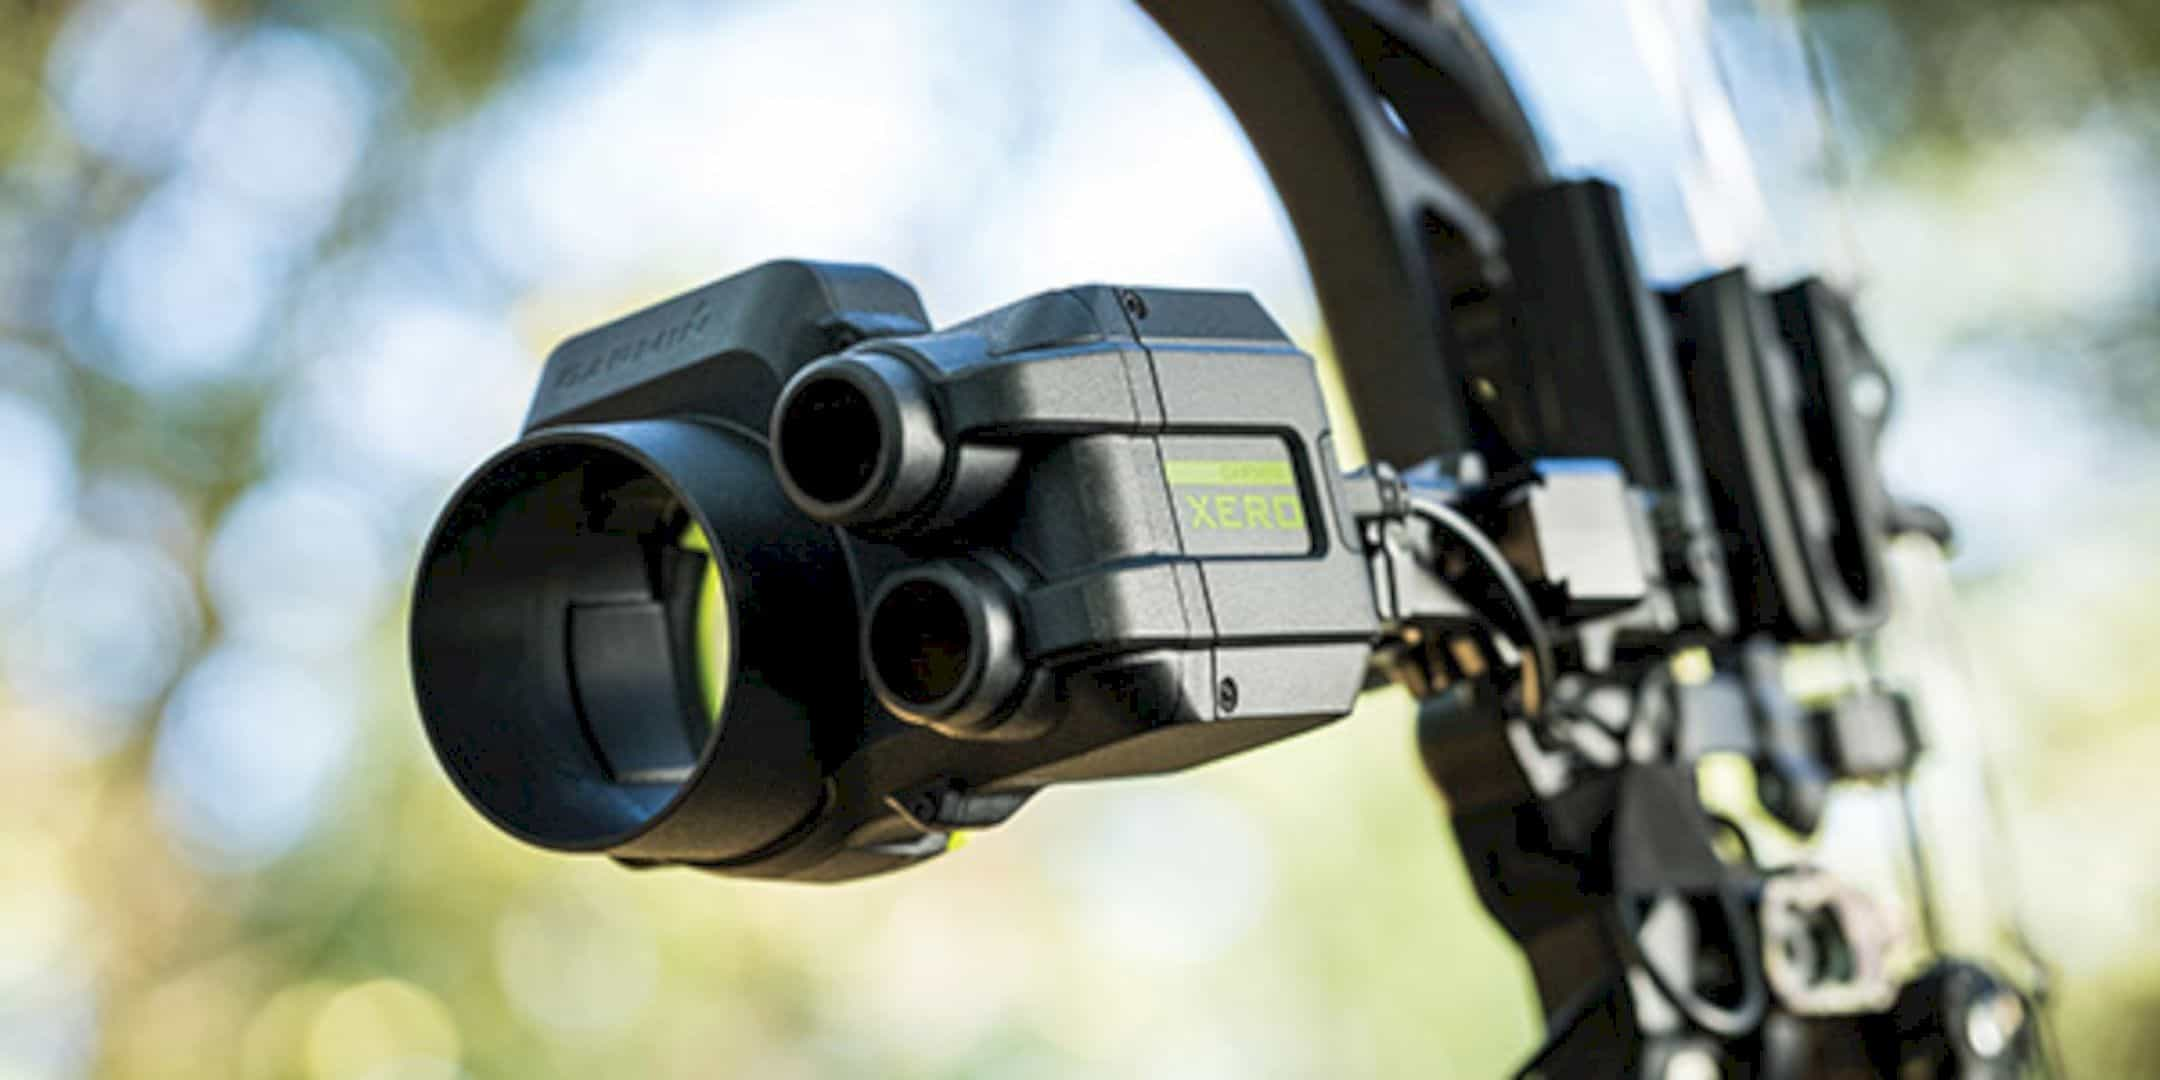 Xero A1i Bow Sight 5